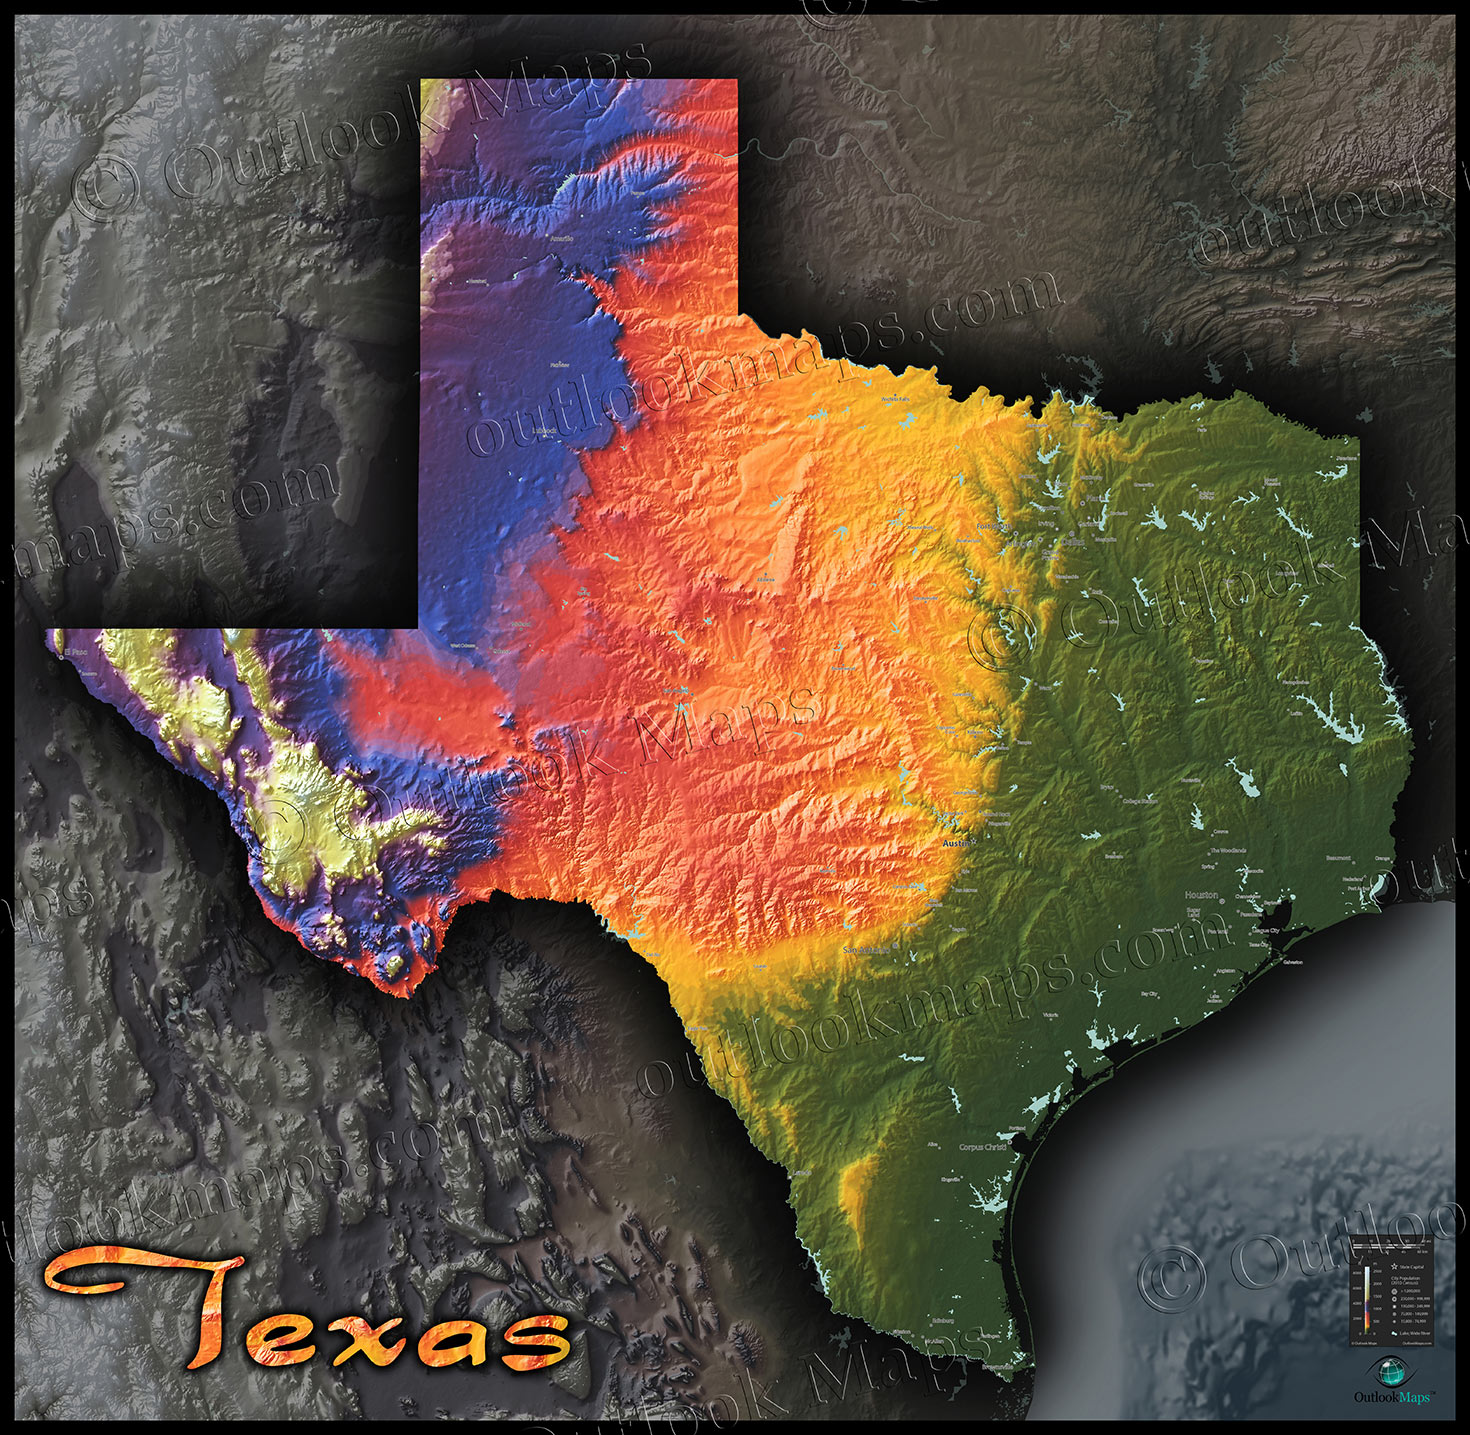 Physical Texas Map | State Topography in Colorful 3D Style